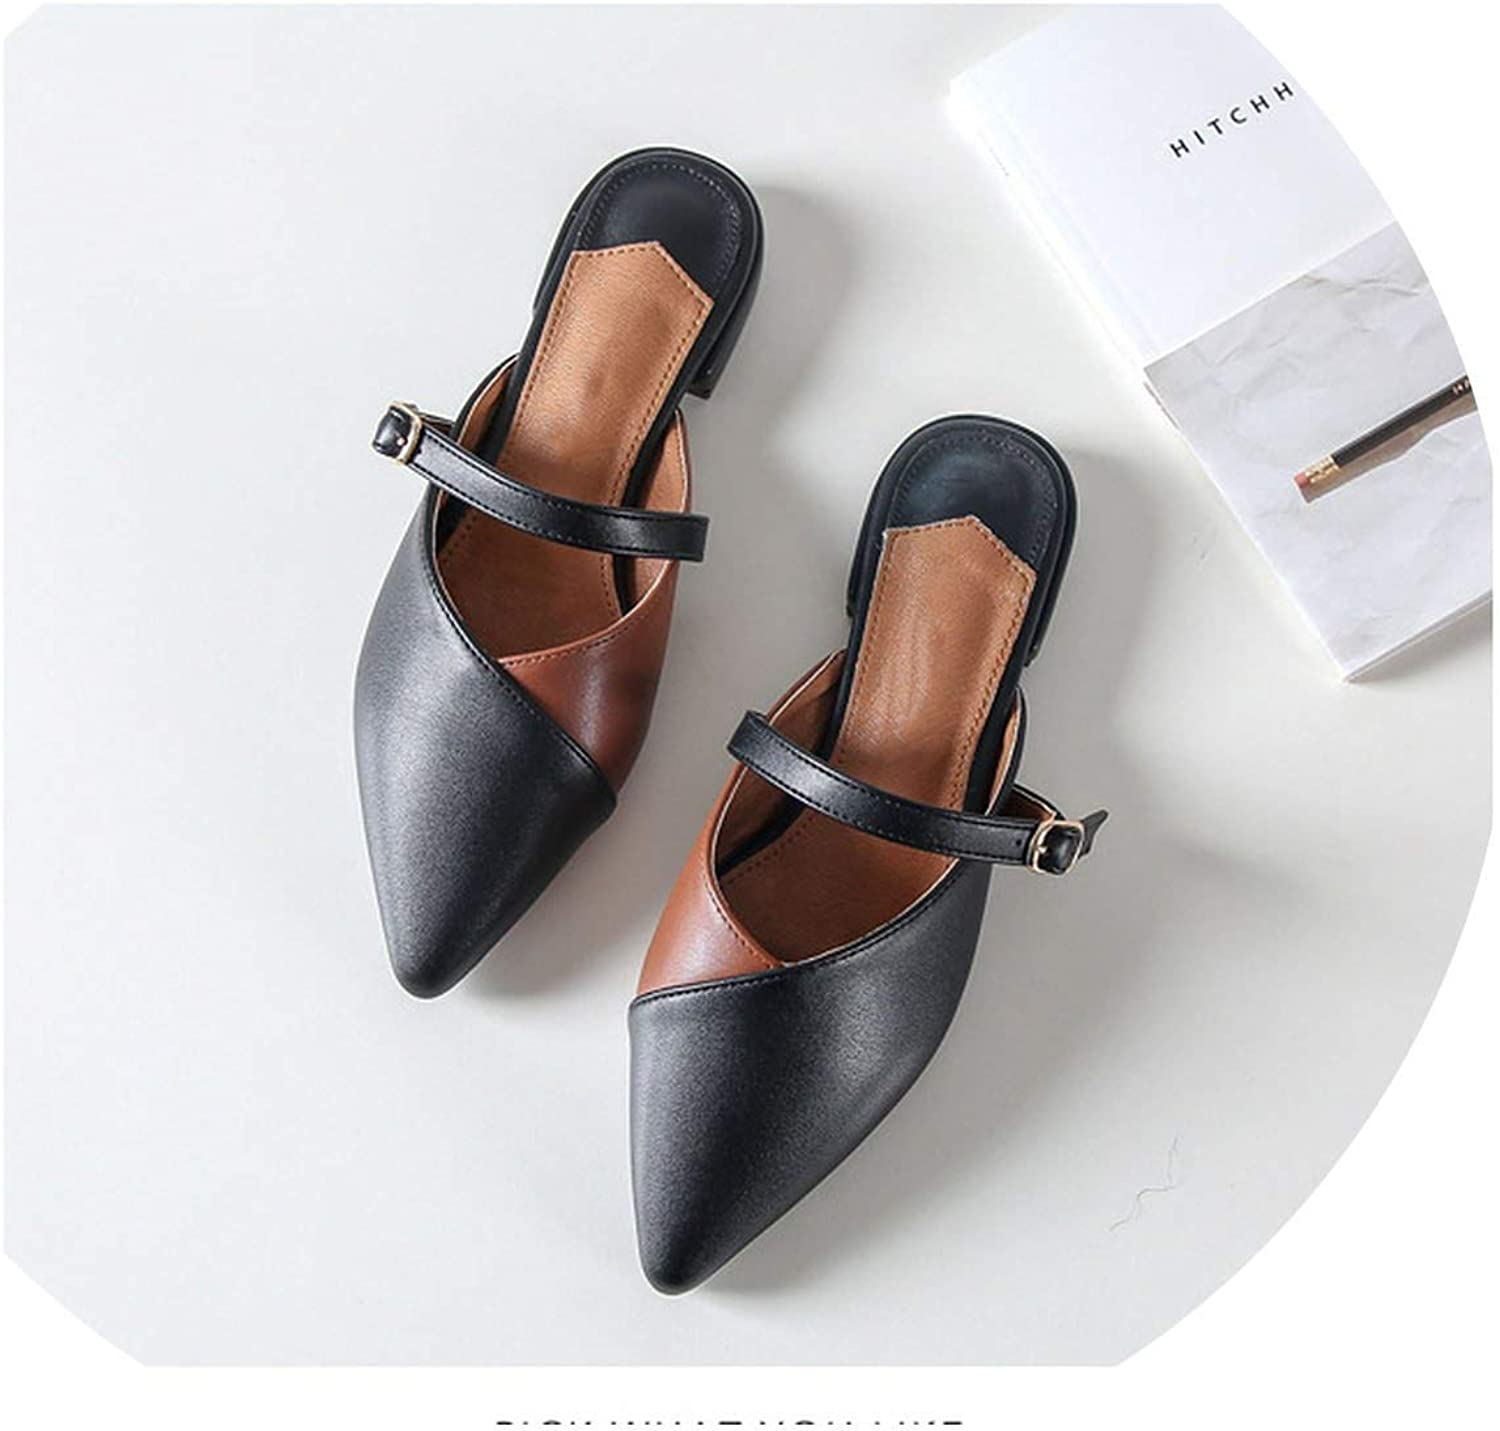 Mules Slides PU Leather Slipper Flat Heel Platform Buckle Woman Pointed Toe shoes